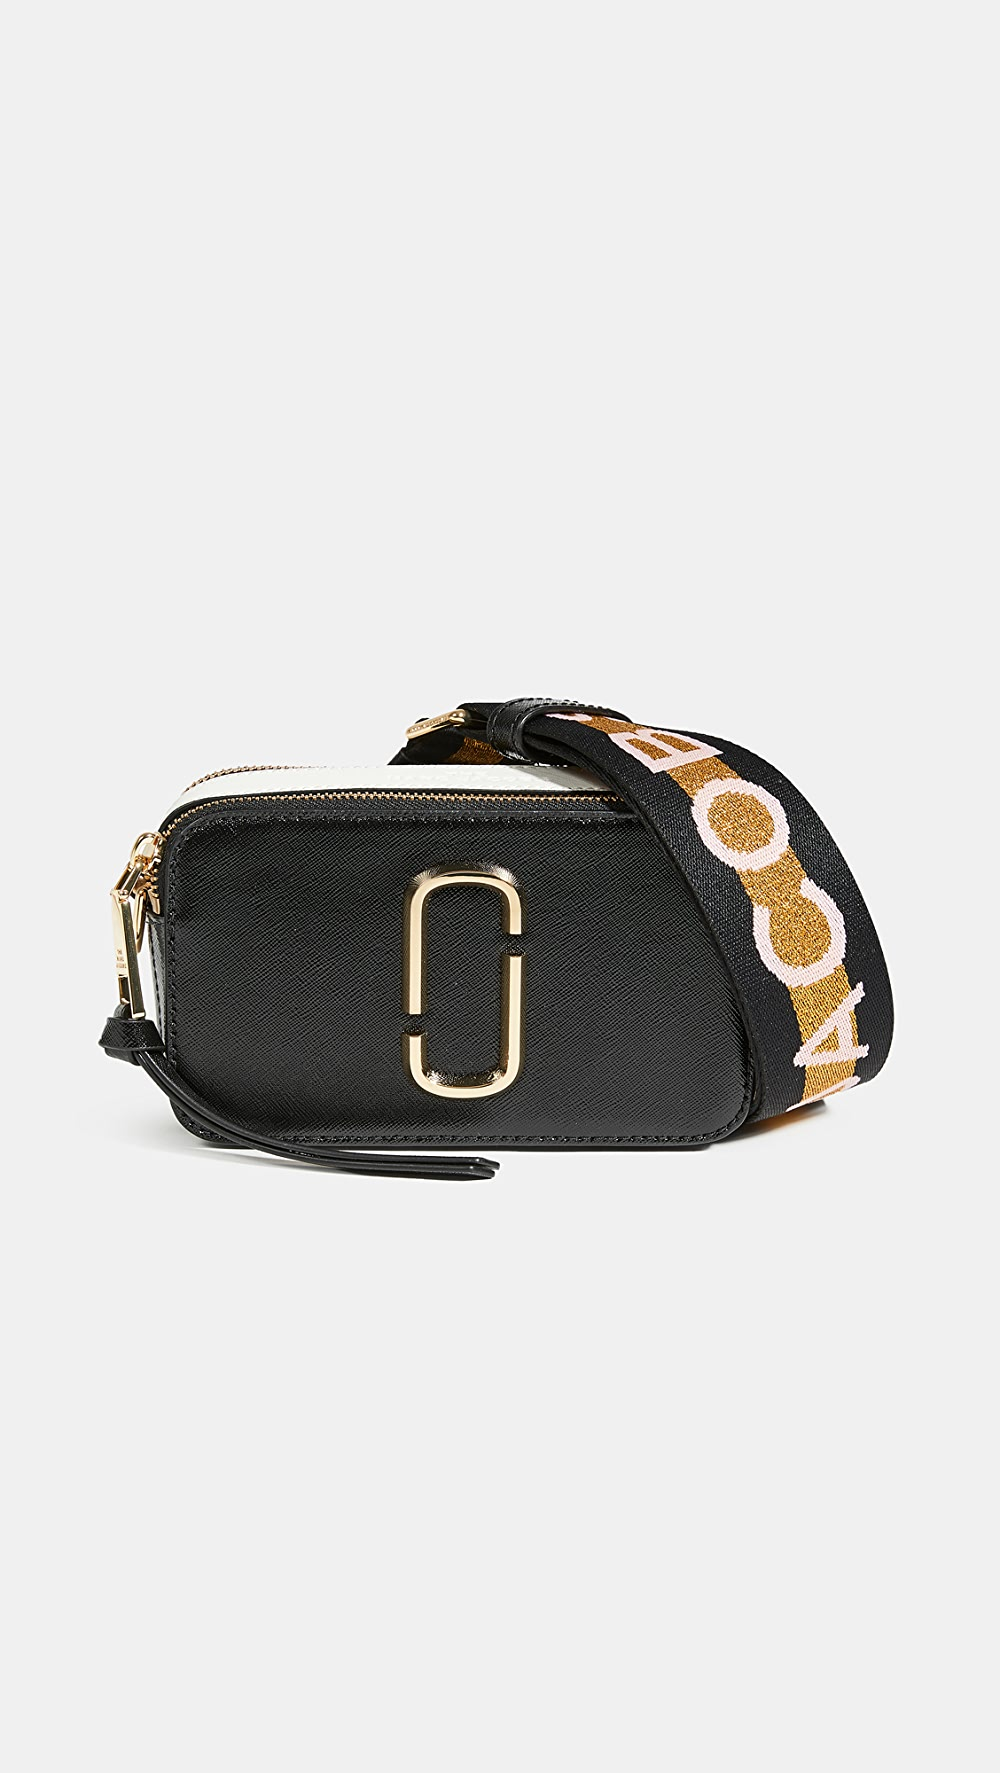 2019 Fashion The Marc Jacobs - Snapshot Camera Bag Perfect In Workmanship